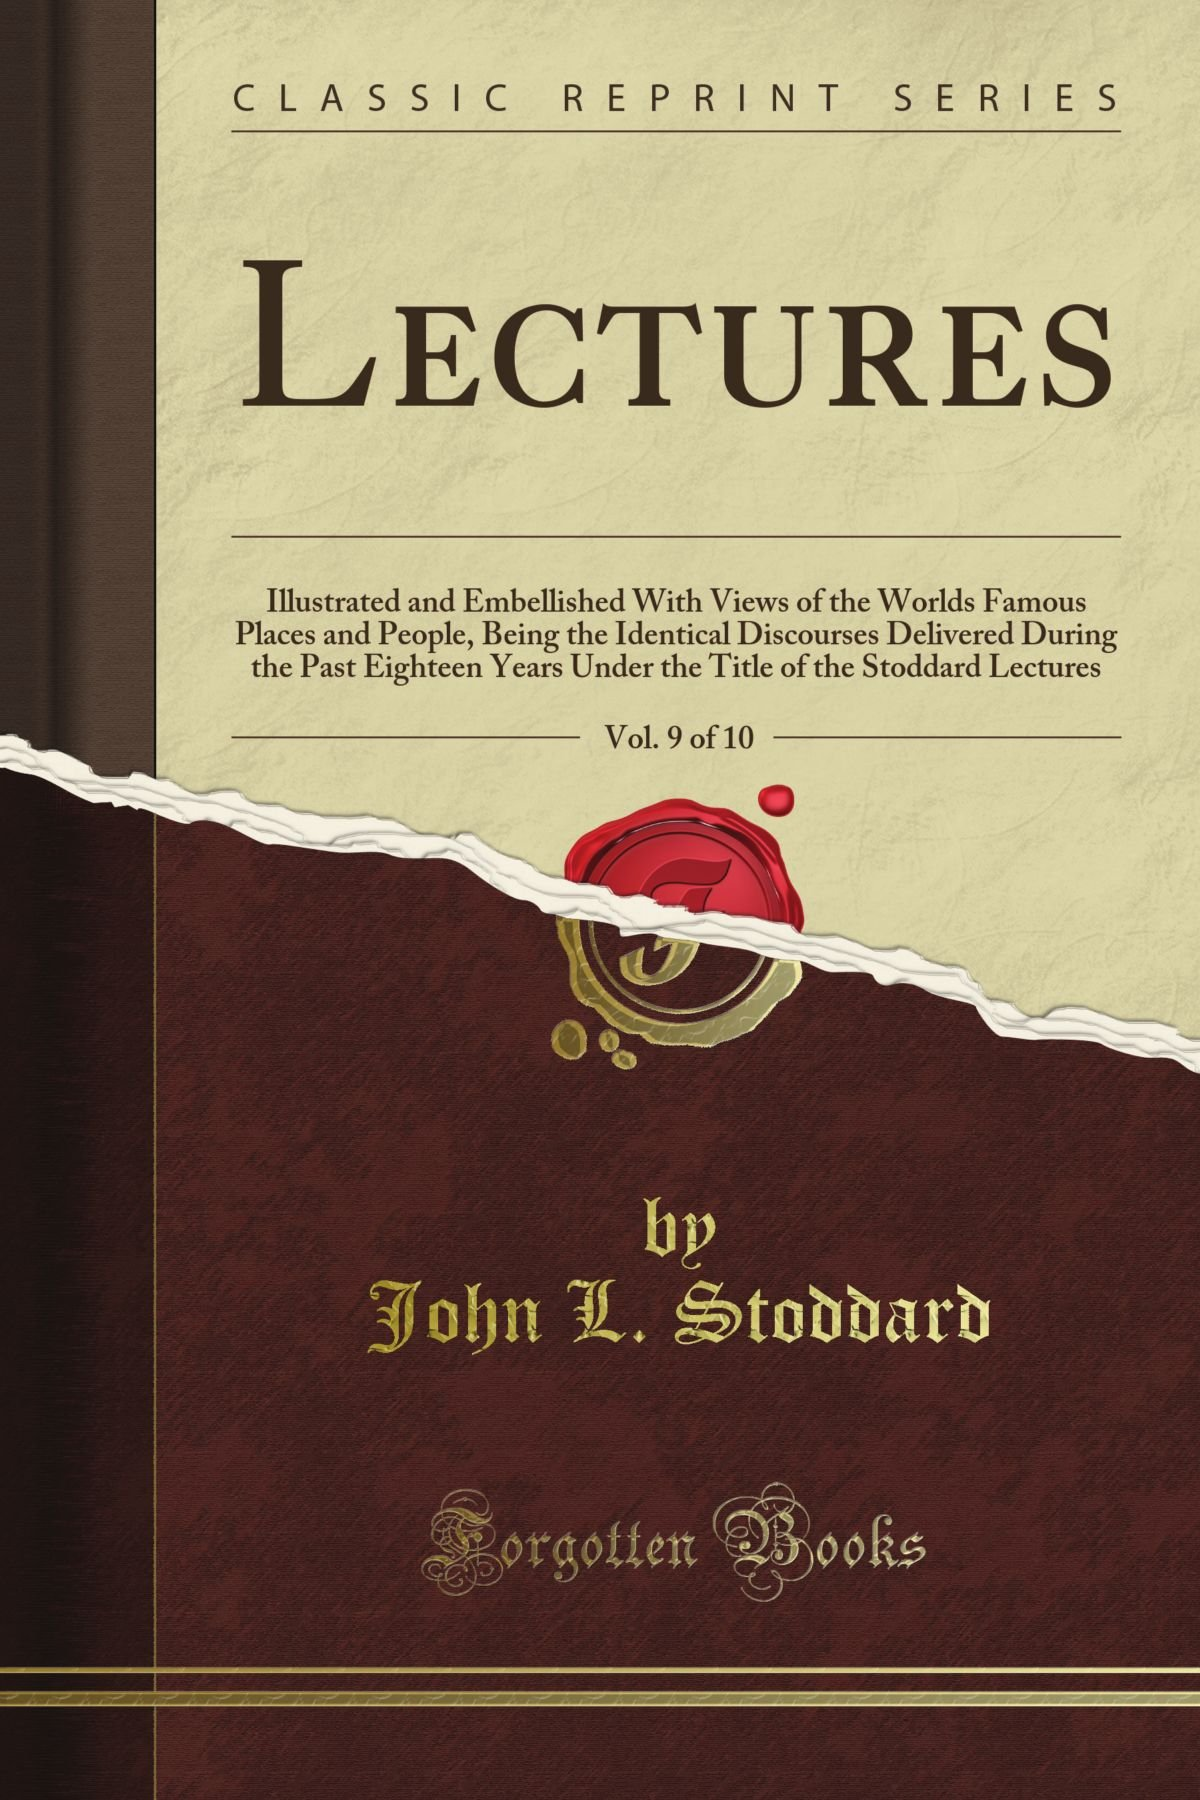 Download Lectures: Illustrated and Embellished With Views of the World's Famous Places and People, Being the Identical Discourses Delivered During the Past ... Lectures, Vol. 9 of 10 (Classic Reprint) PDF